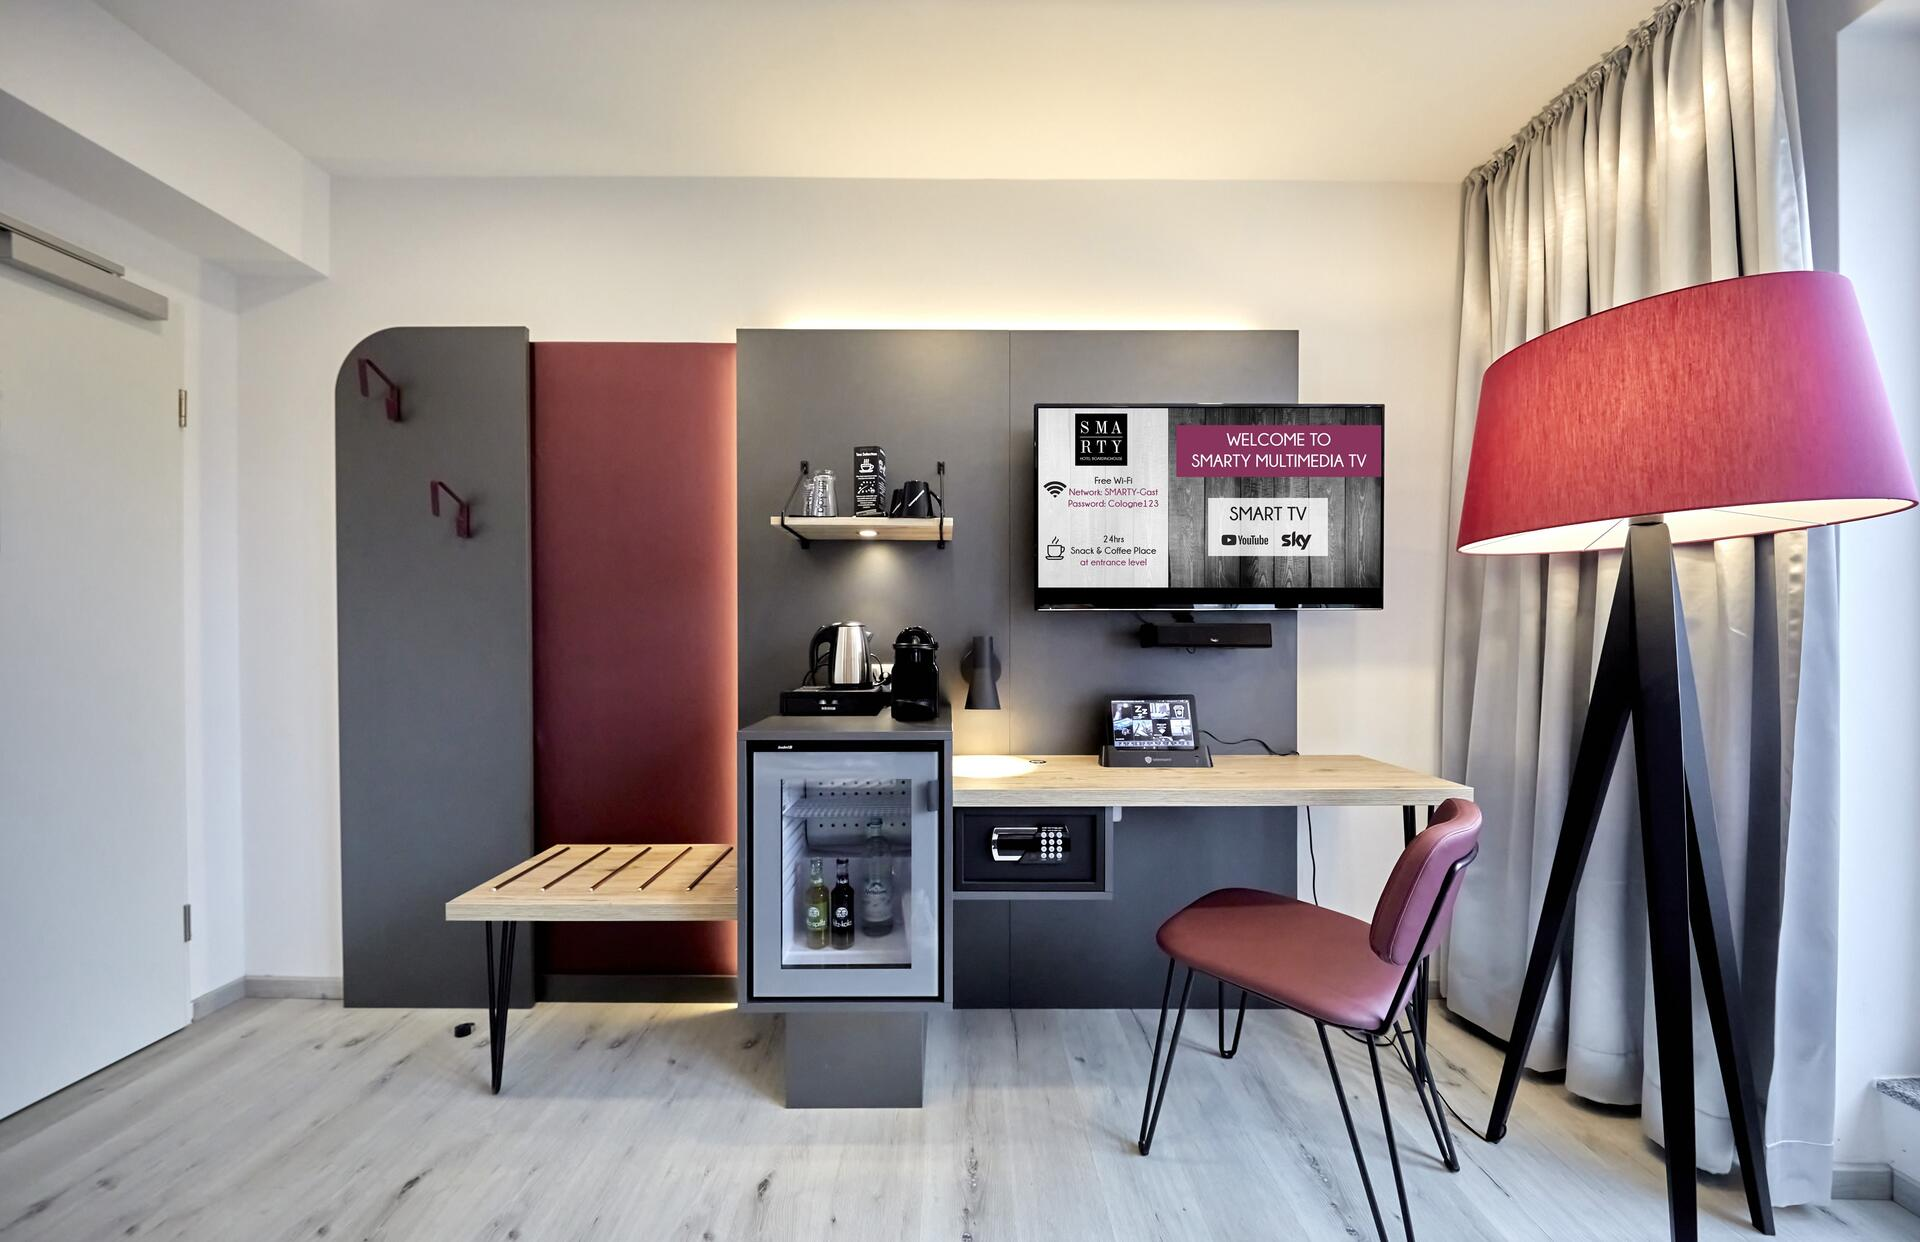 Accommodation at Smarty Hotels in Cologne and Leichlingen